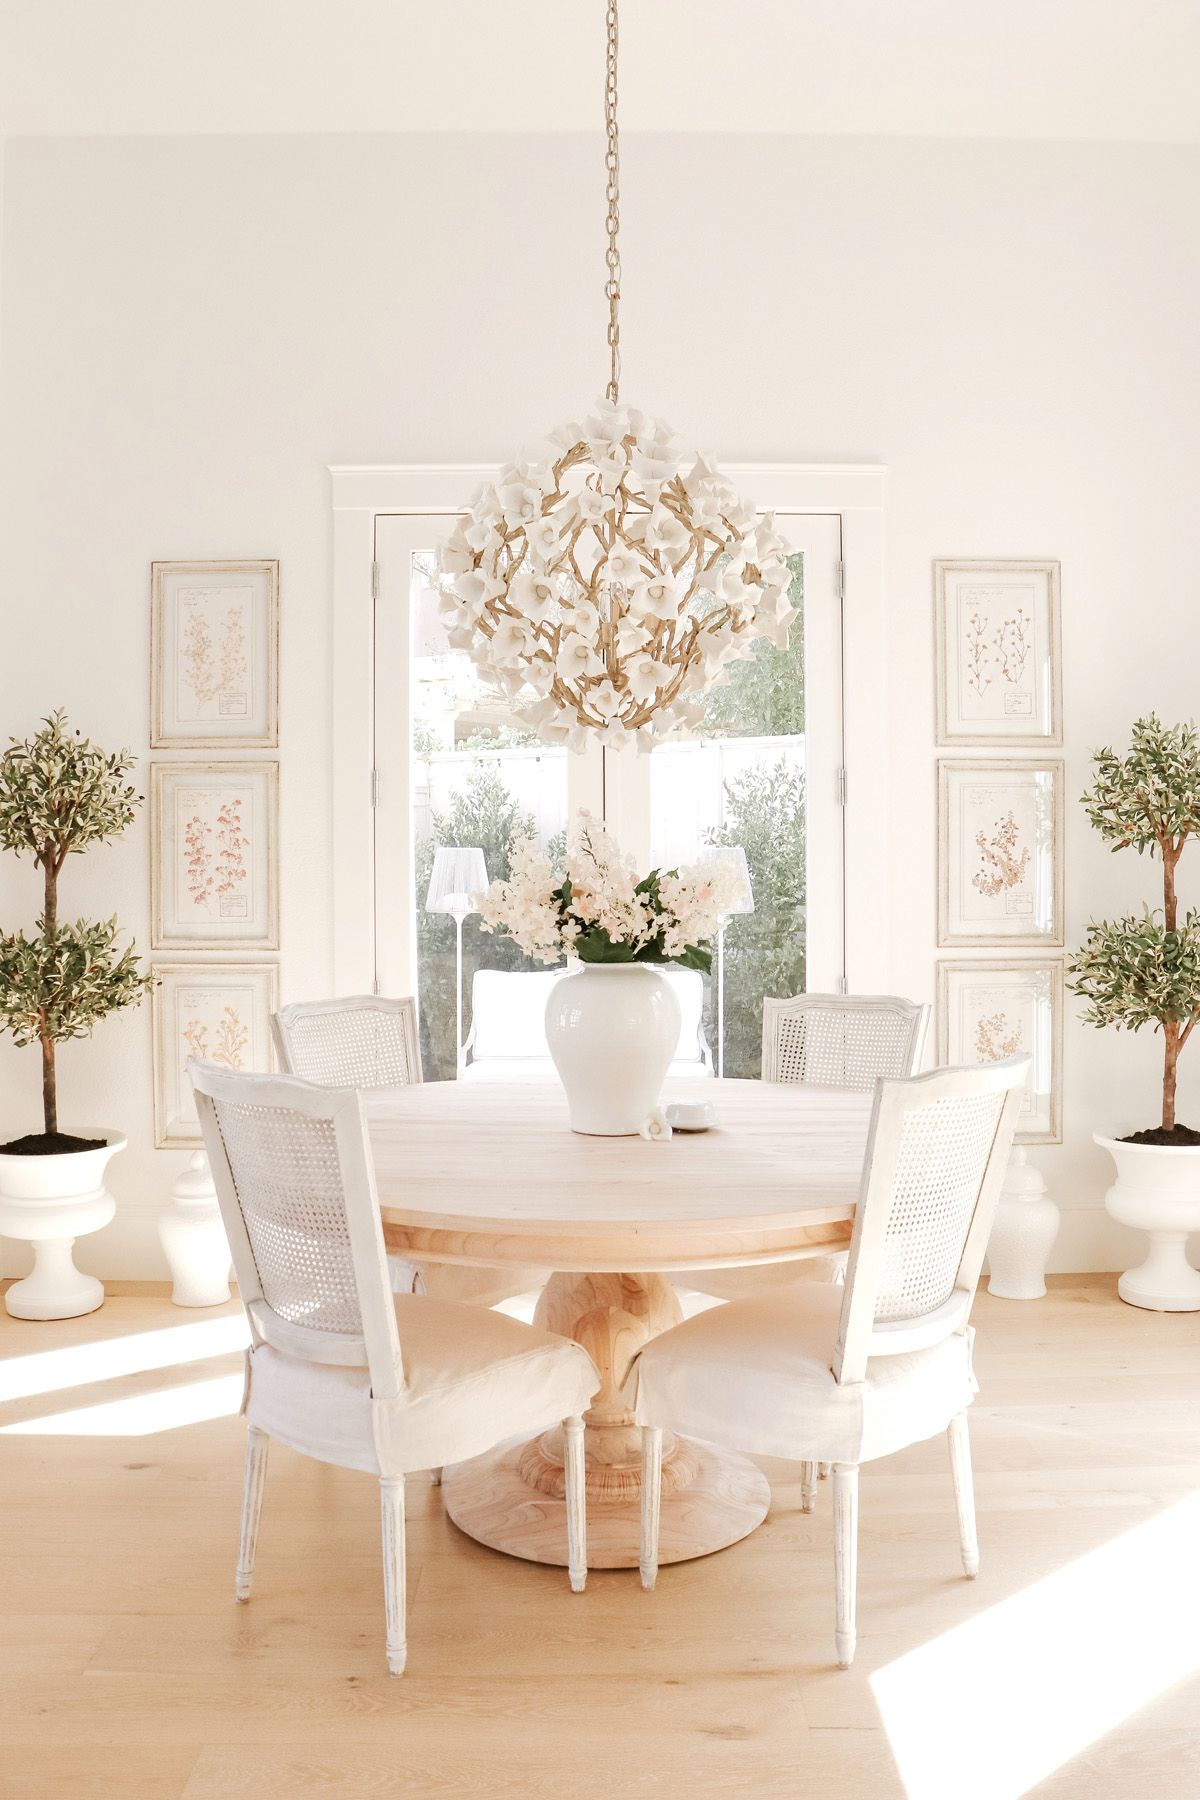 How To Decorate A White Dining Room Table